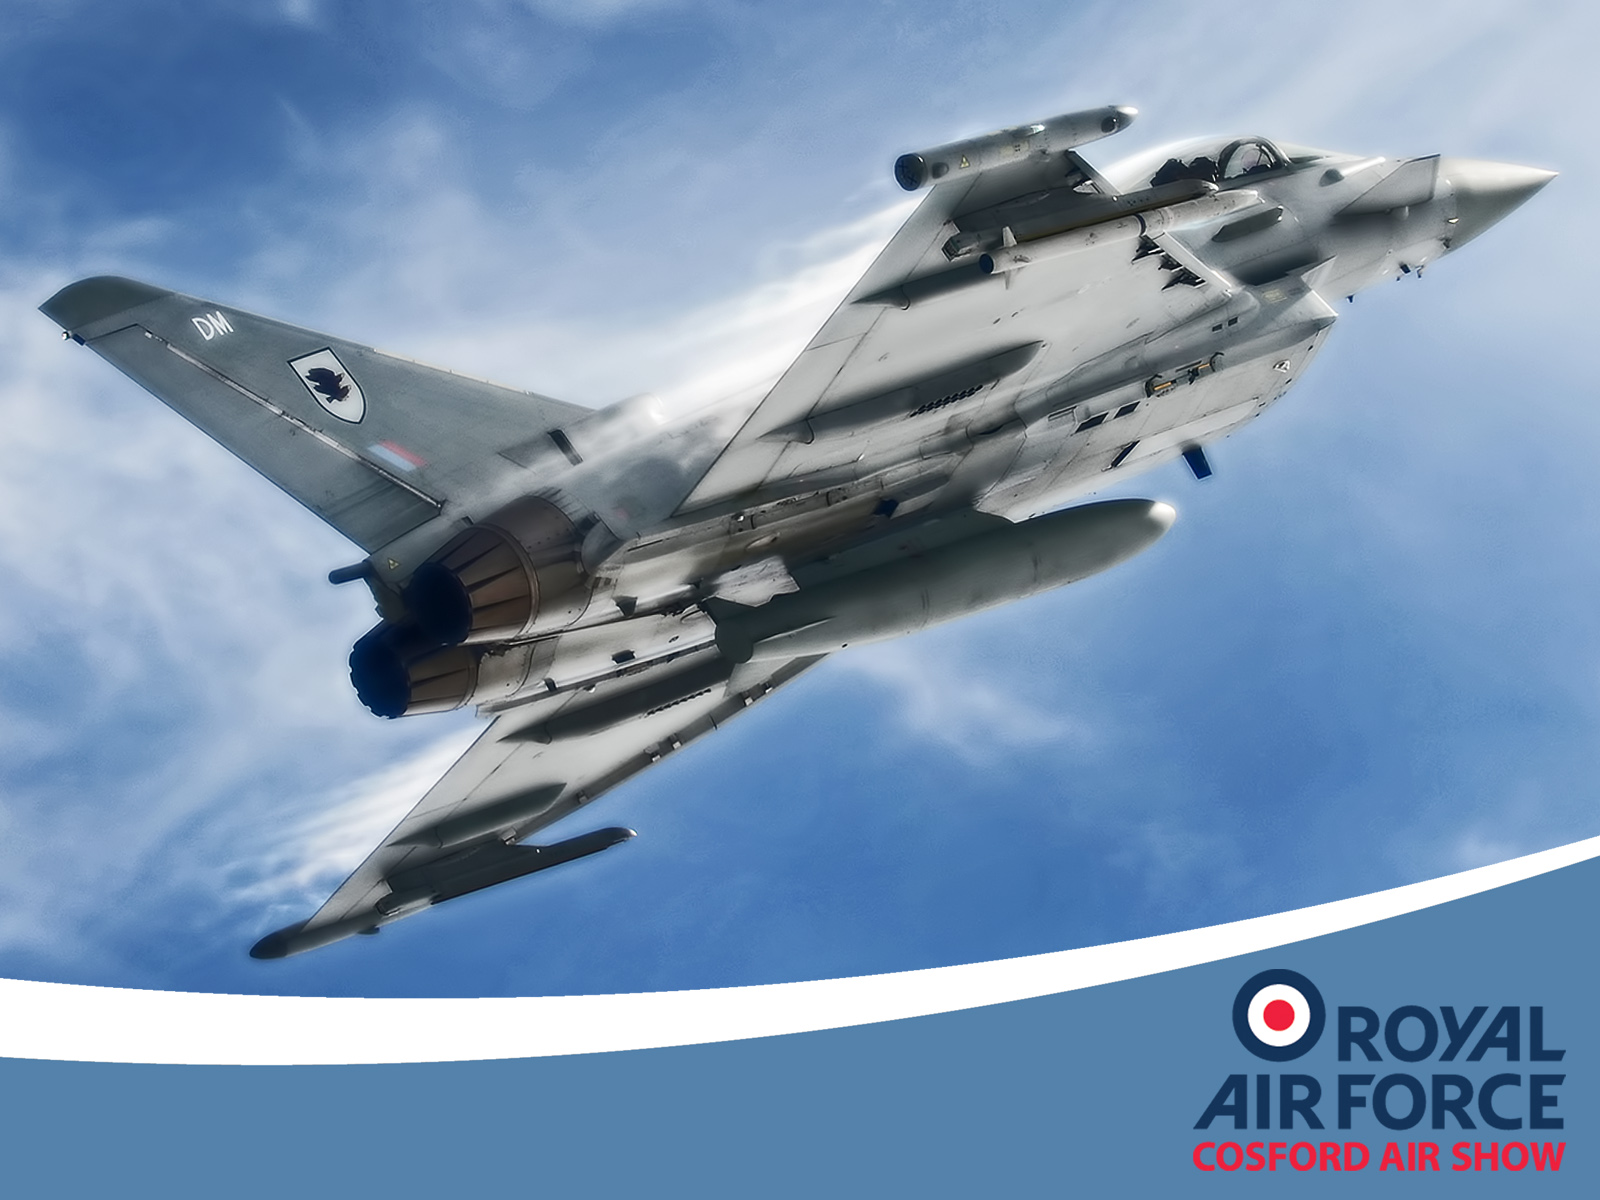 AIRSHOW NEWS: Red Arrows to headline flying display at RAF Cosford